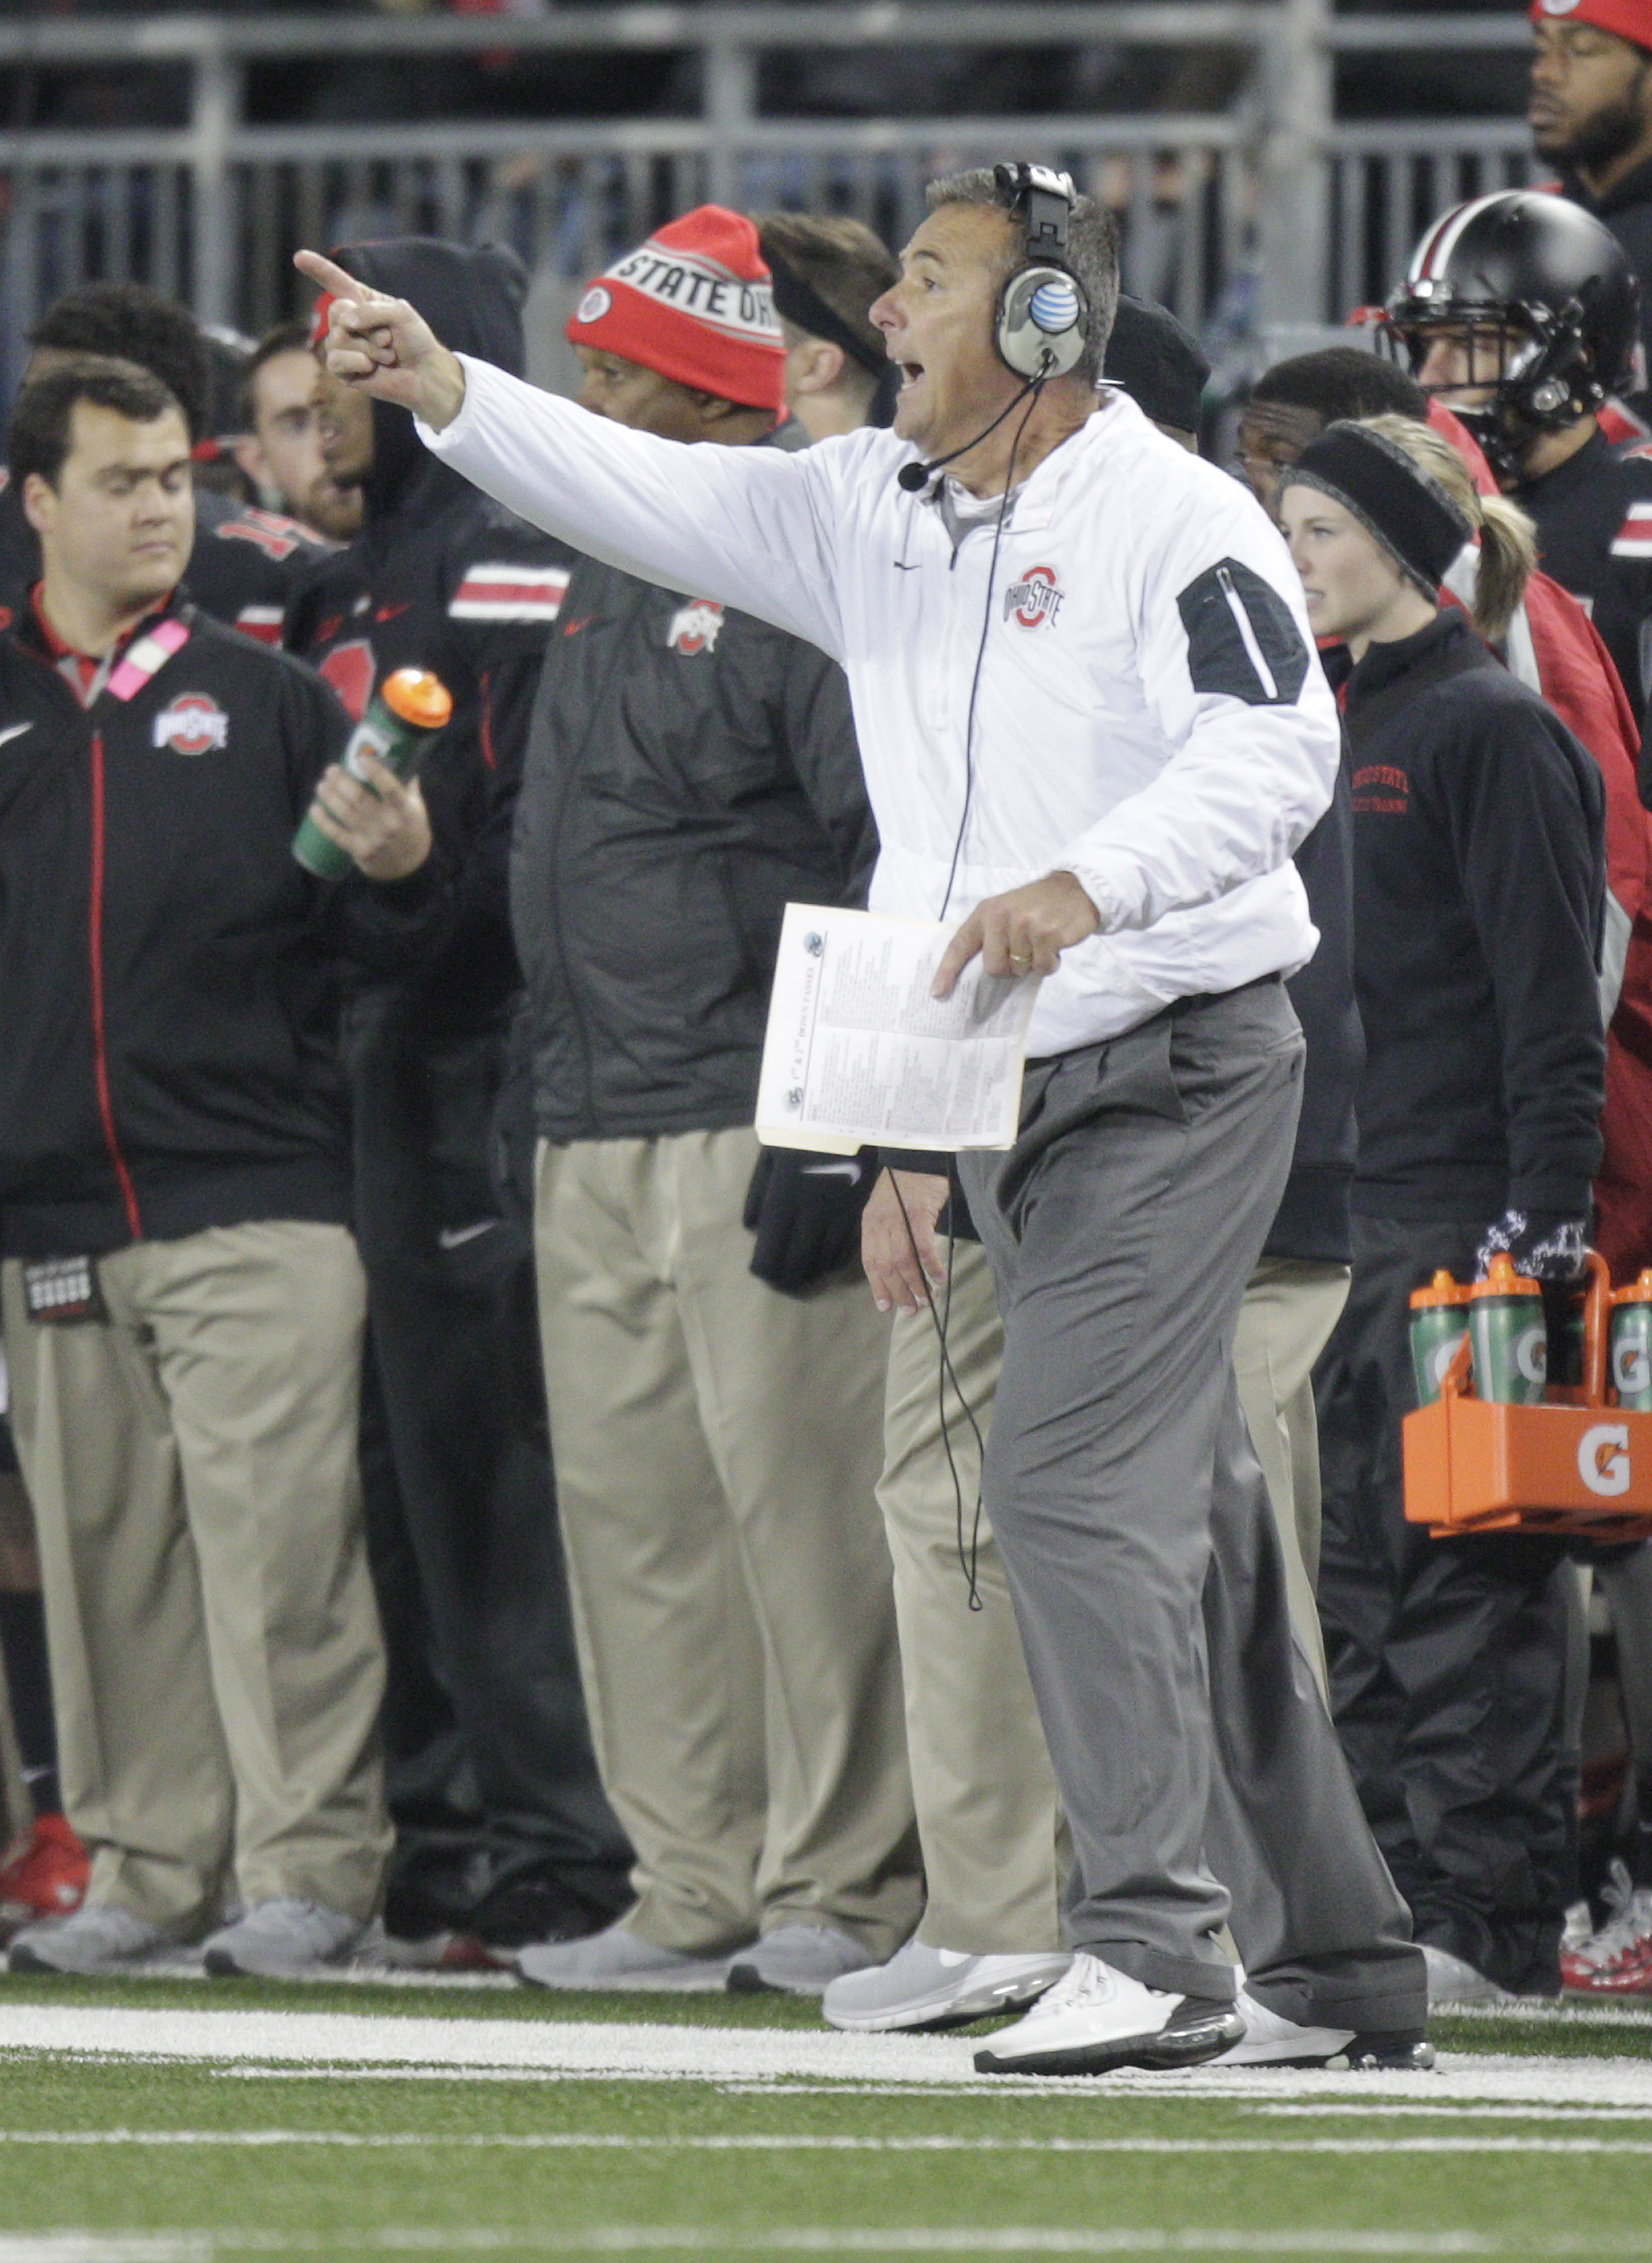 Ohio State head coach Urban Meyer shouts to his team during the first half of their NCAA college football game against Penn State, Saturday, Oct. 17, 2015, in Columbus, Ohio. (AP Photo/Jay LaPrete)